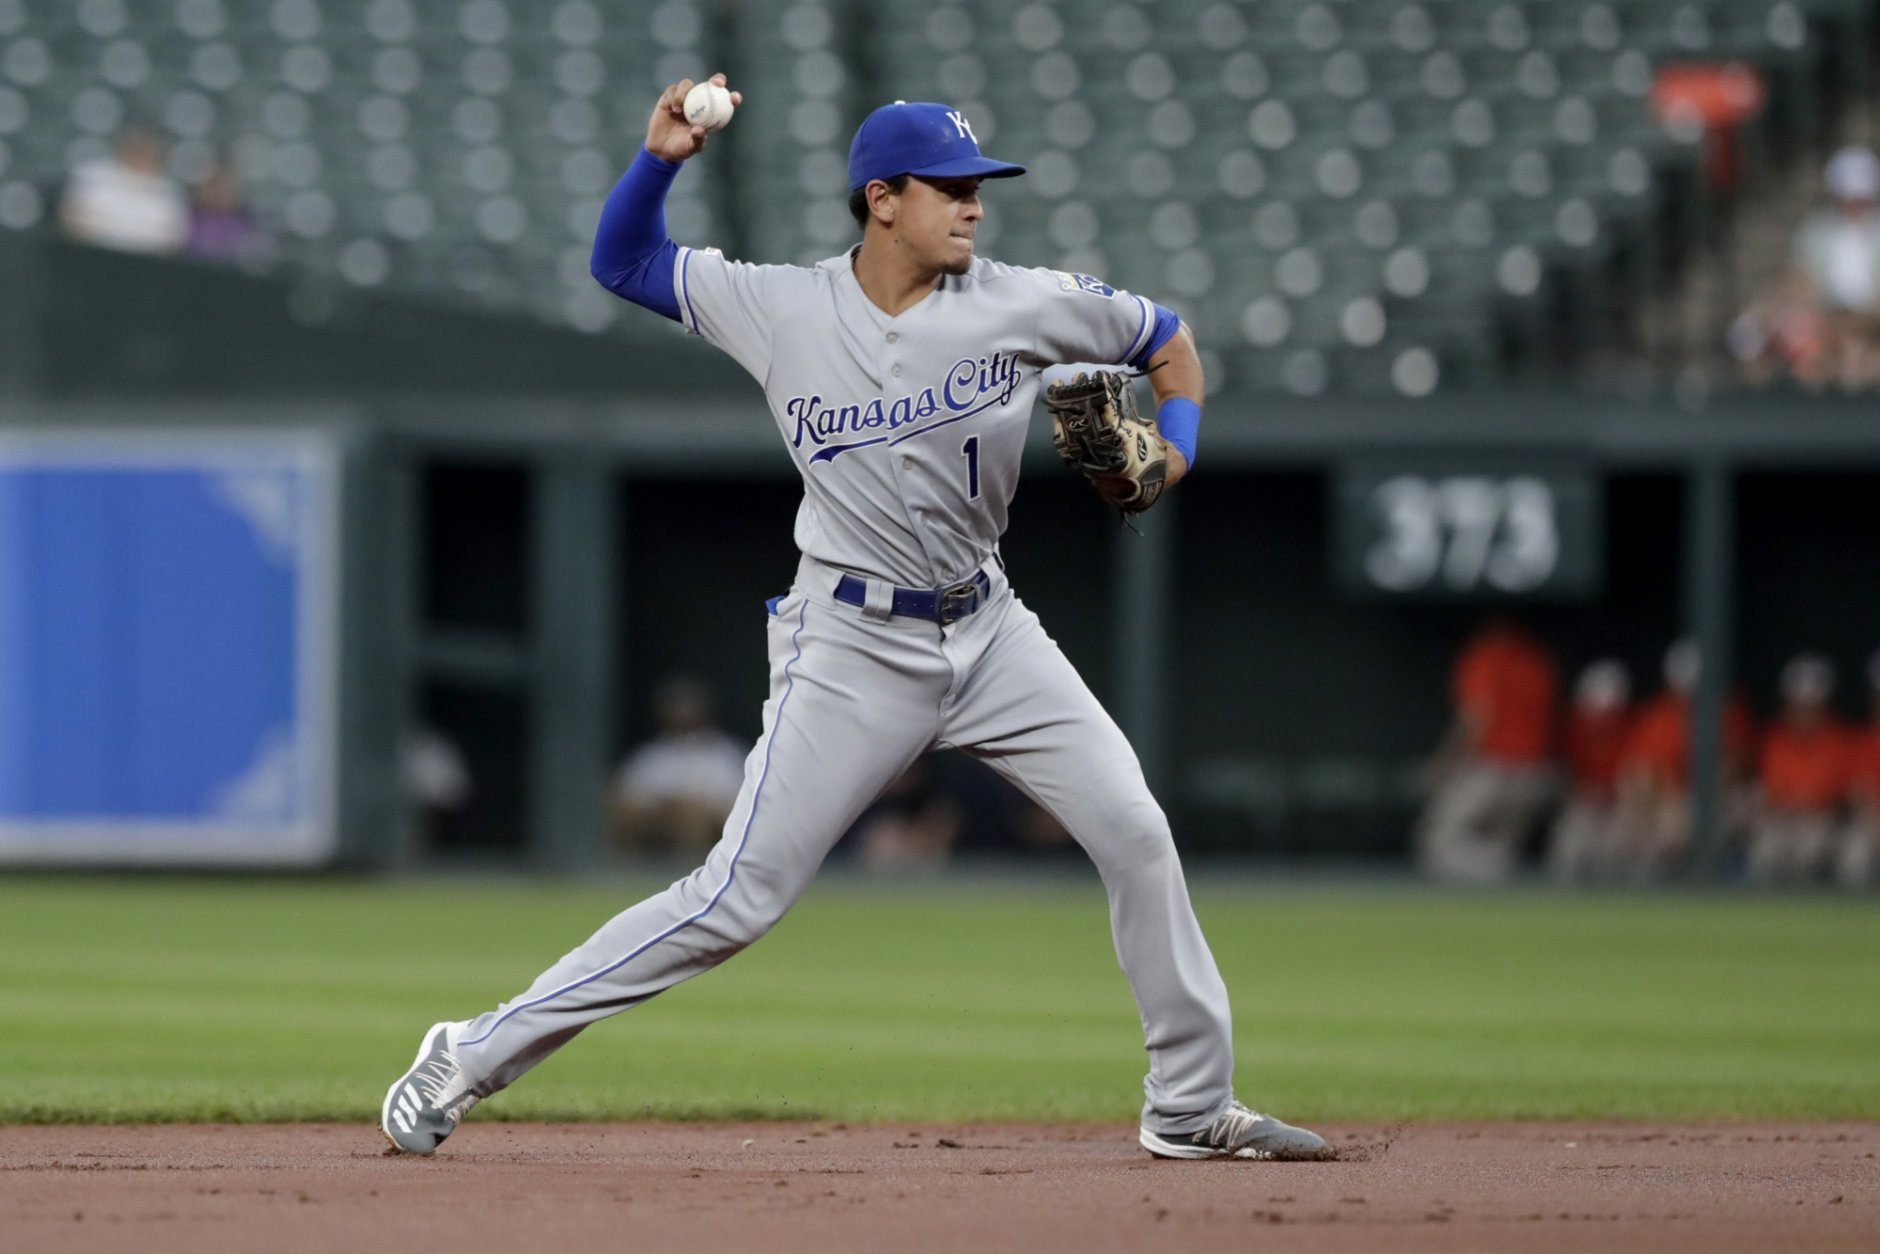 <p>Kansas City Royals shortstop Nicky Lopez throws to first after fielding a ground ball from Baltimore Orioles&#8217; Jonathan Villar during the first inning of a baseball game Tuesday, Aug. 20, 2019, in Baltimore.</p>